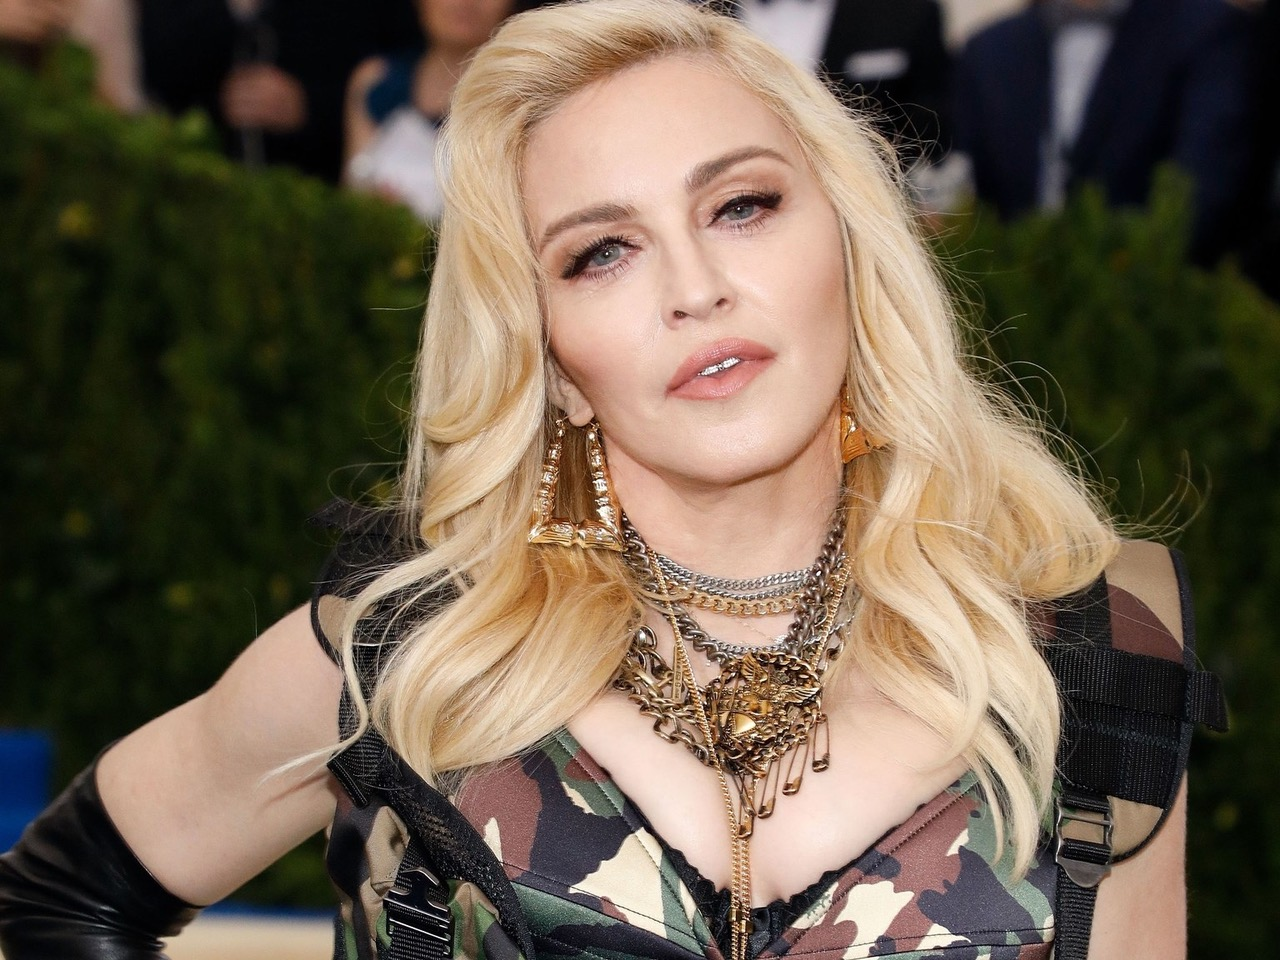 madonna-topless-instagram.jpeg